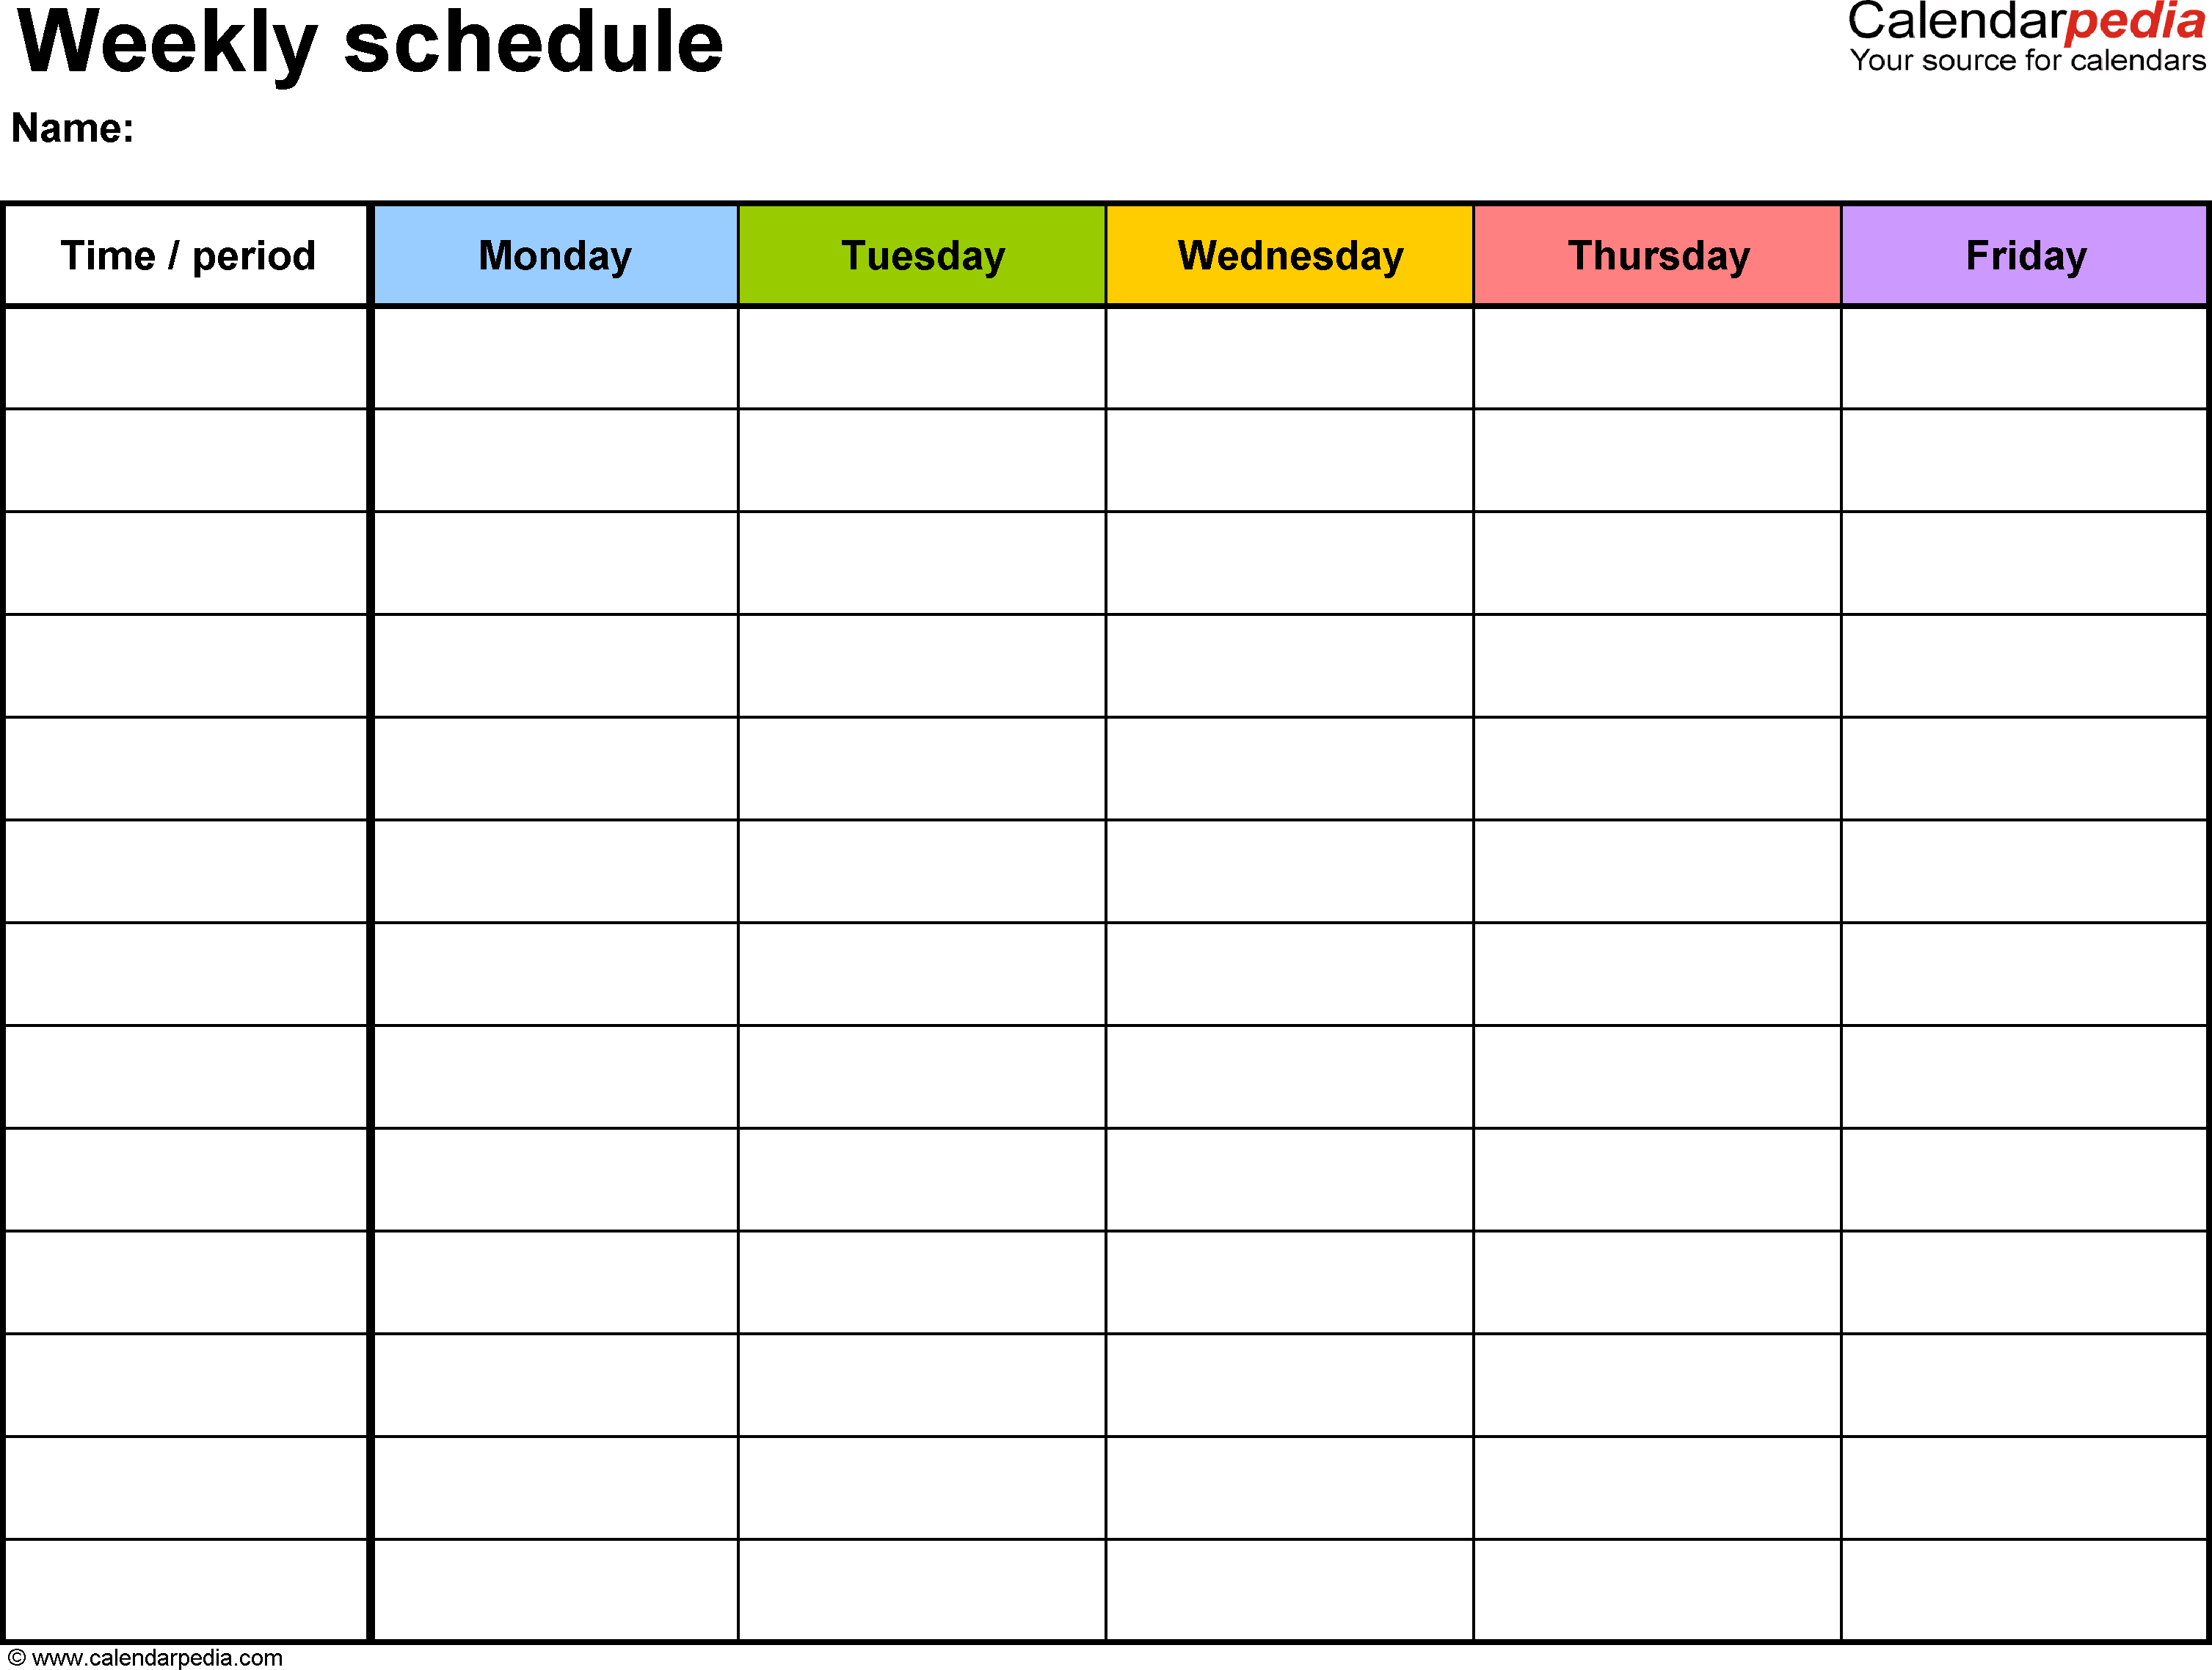 Free Weekly Schedule Templates For Pdf - 18 Templates In Monthly Work Schedule Template Pdf